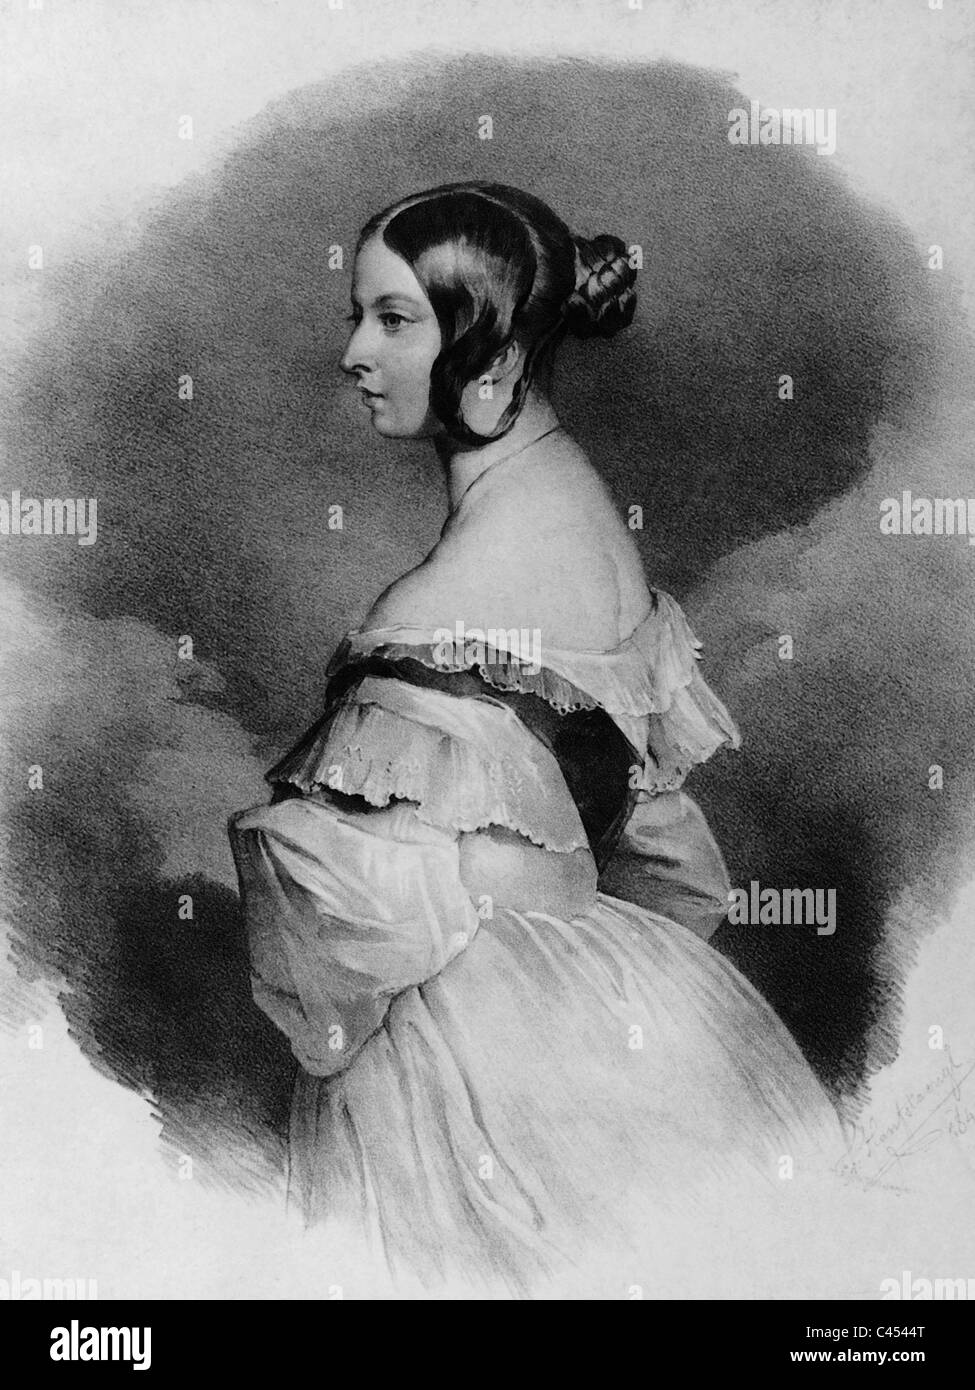 Queen Victoria of Great Britain, 1836 - Stock Image